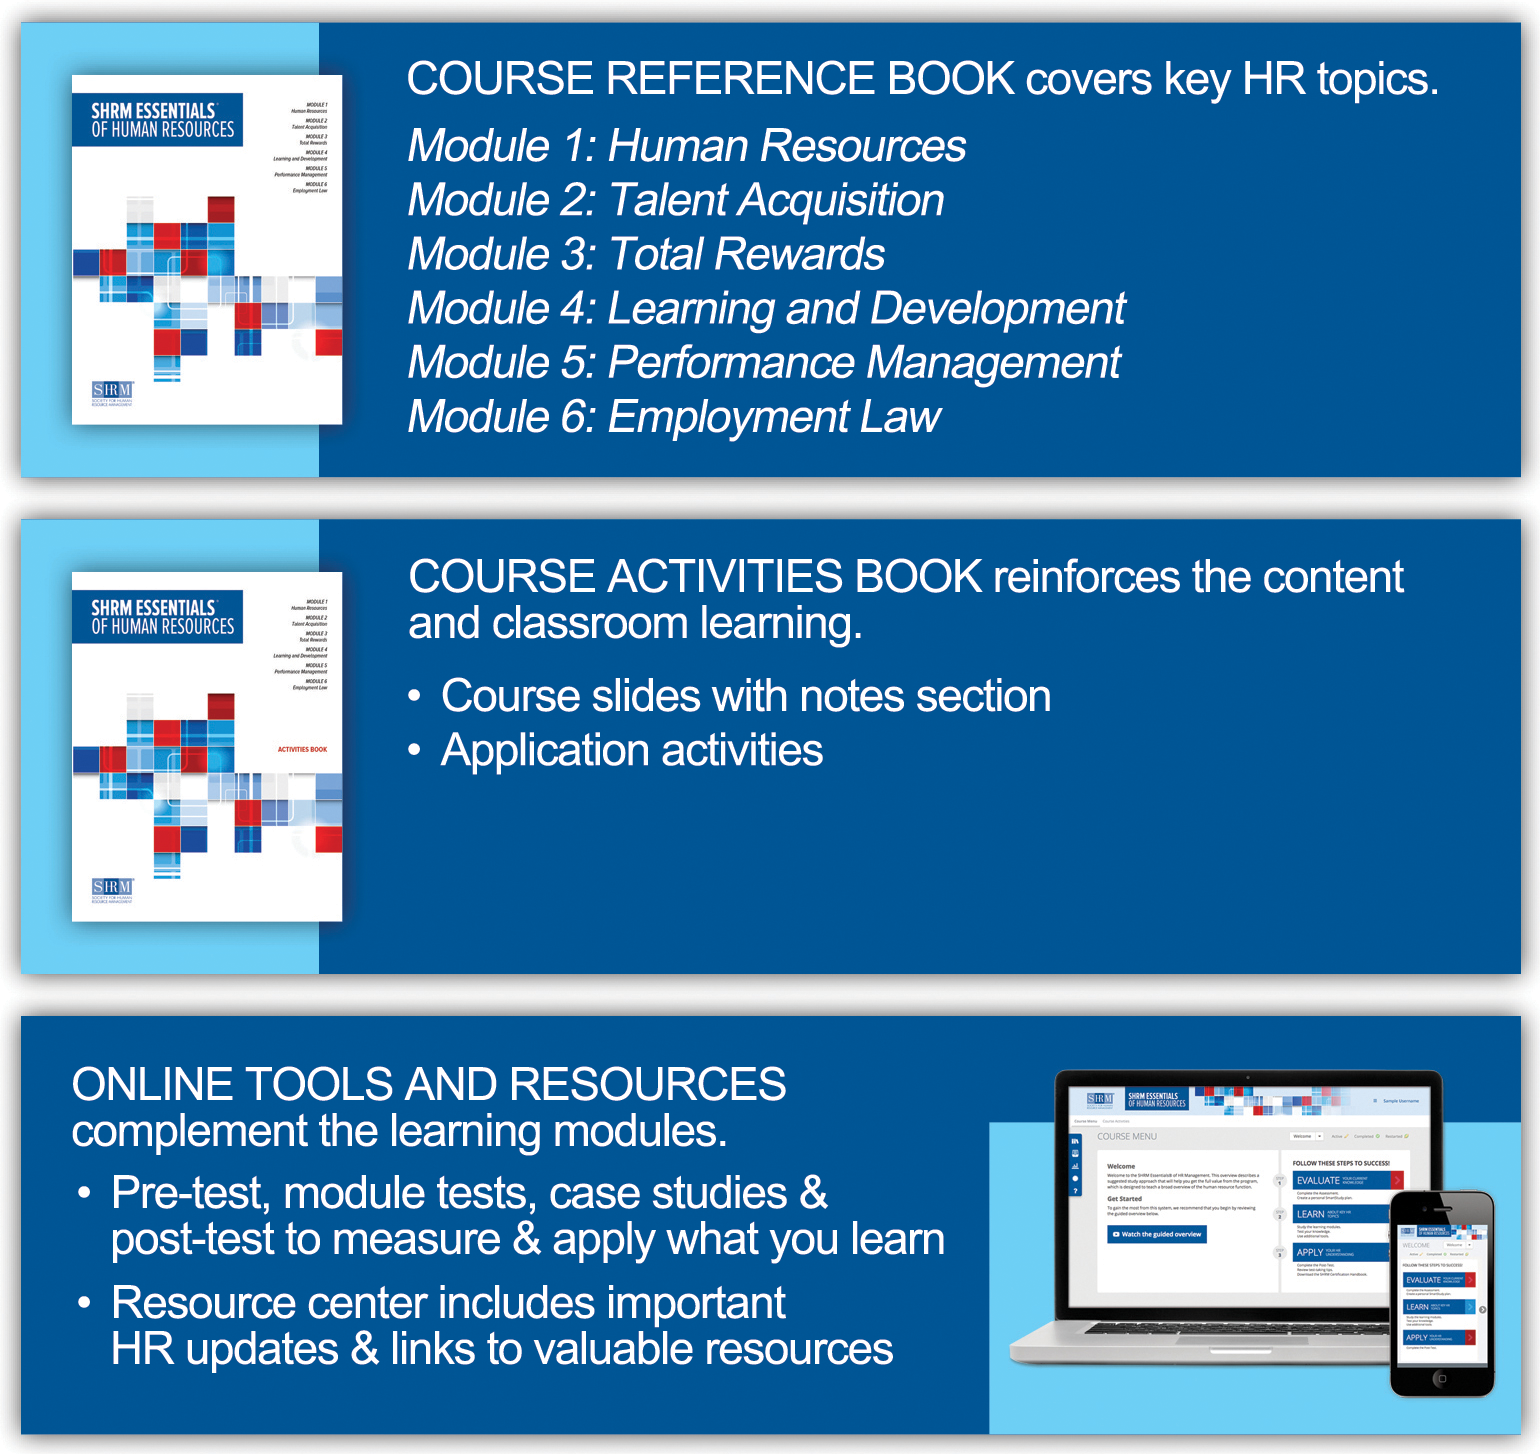 SHRM Essentials of Human Resources Course Materials